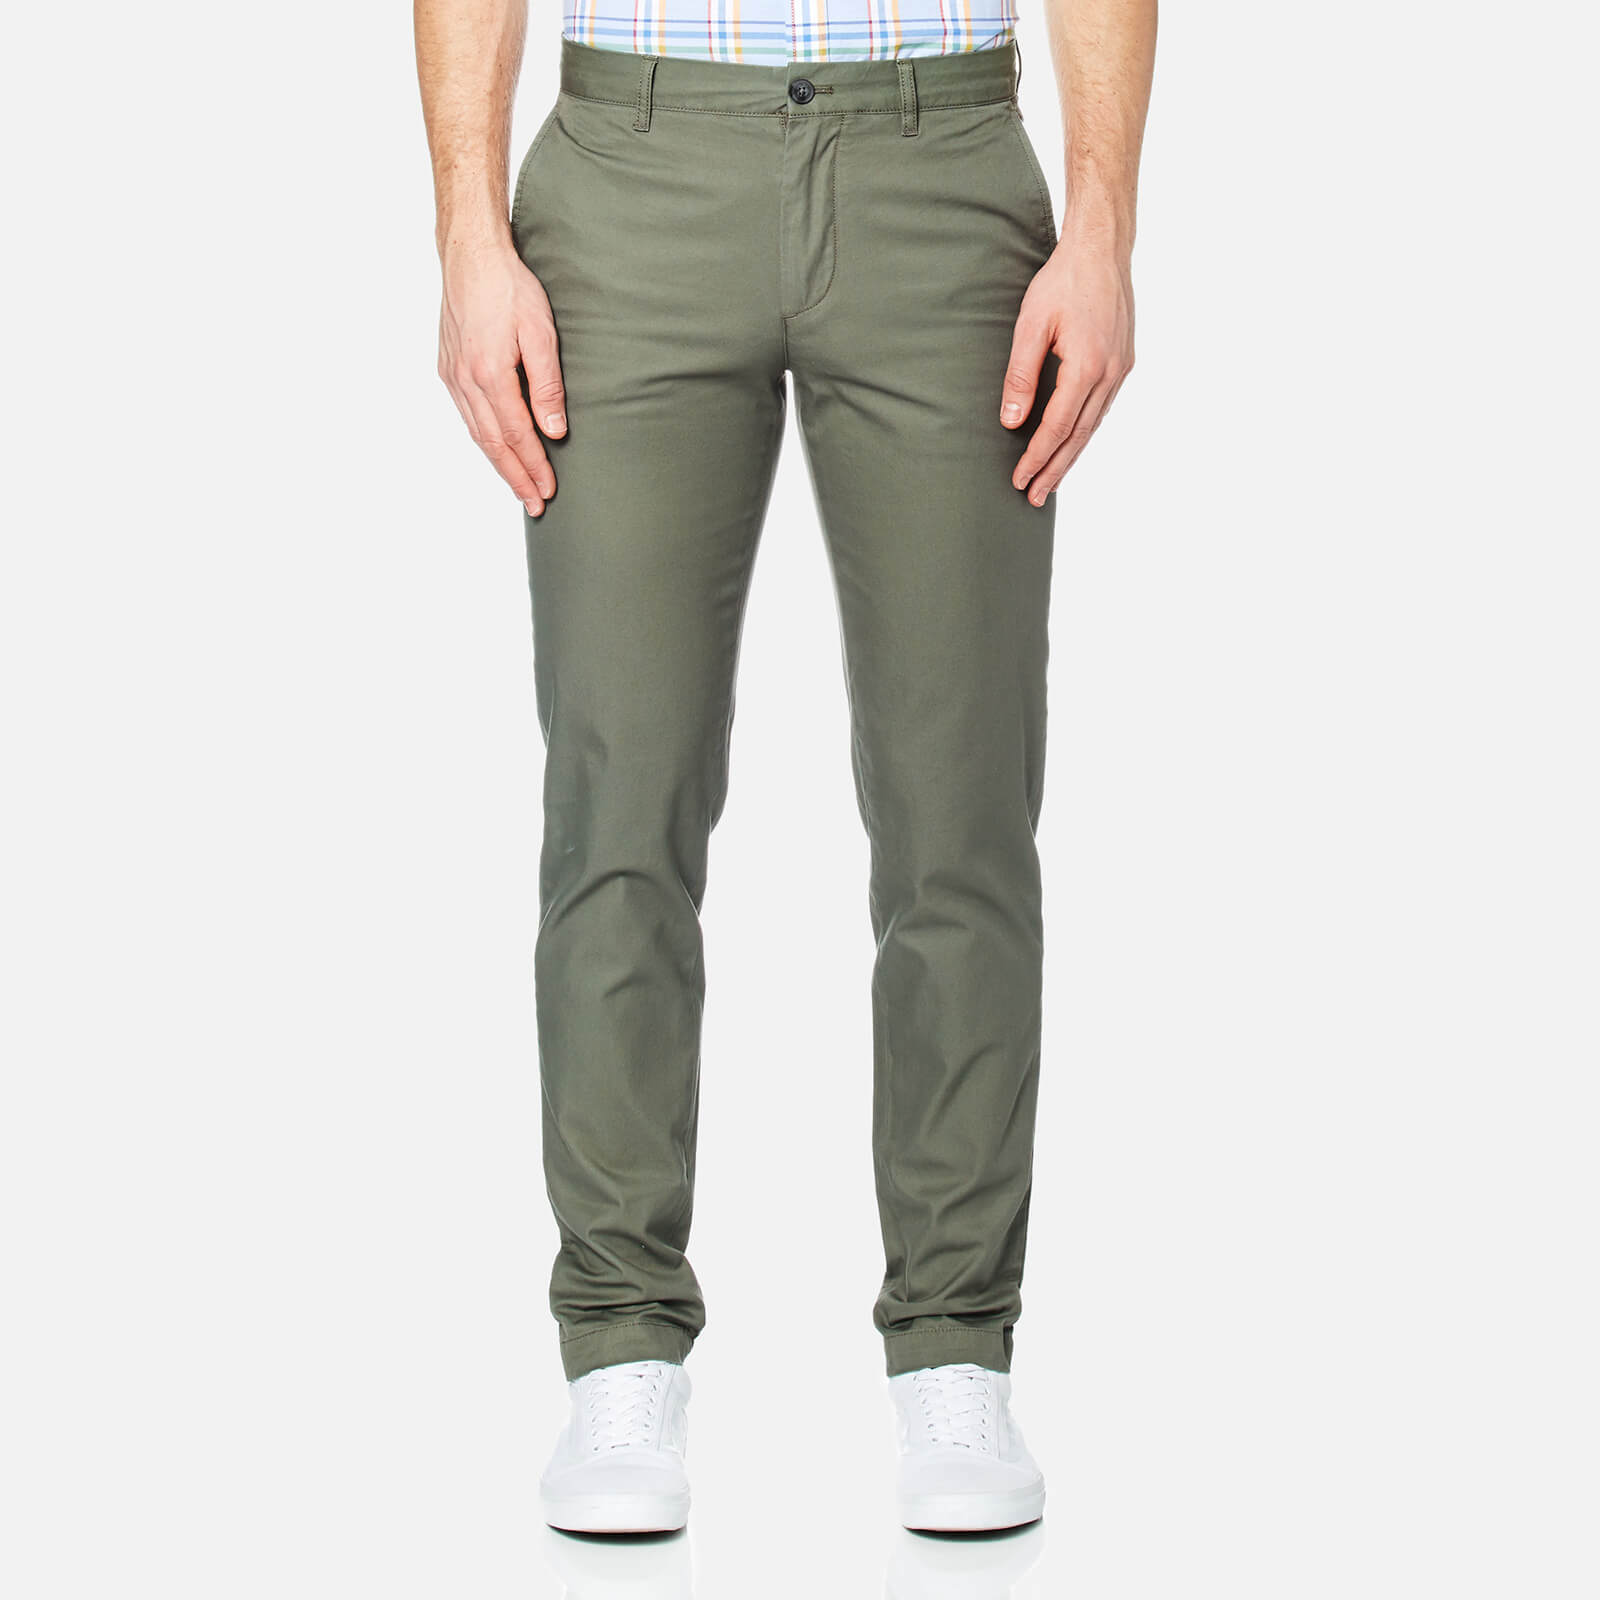 845f2c97 Lacoste Men's Slim Fit Chinos - Army - Free UK Delivery over £50